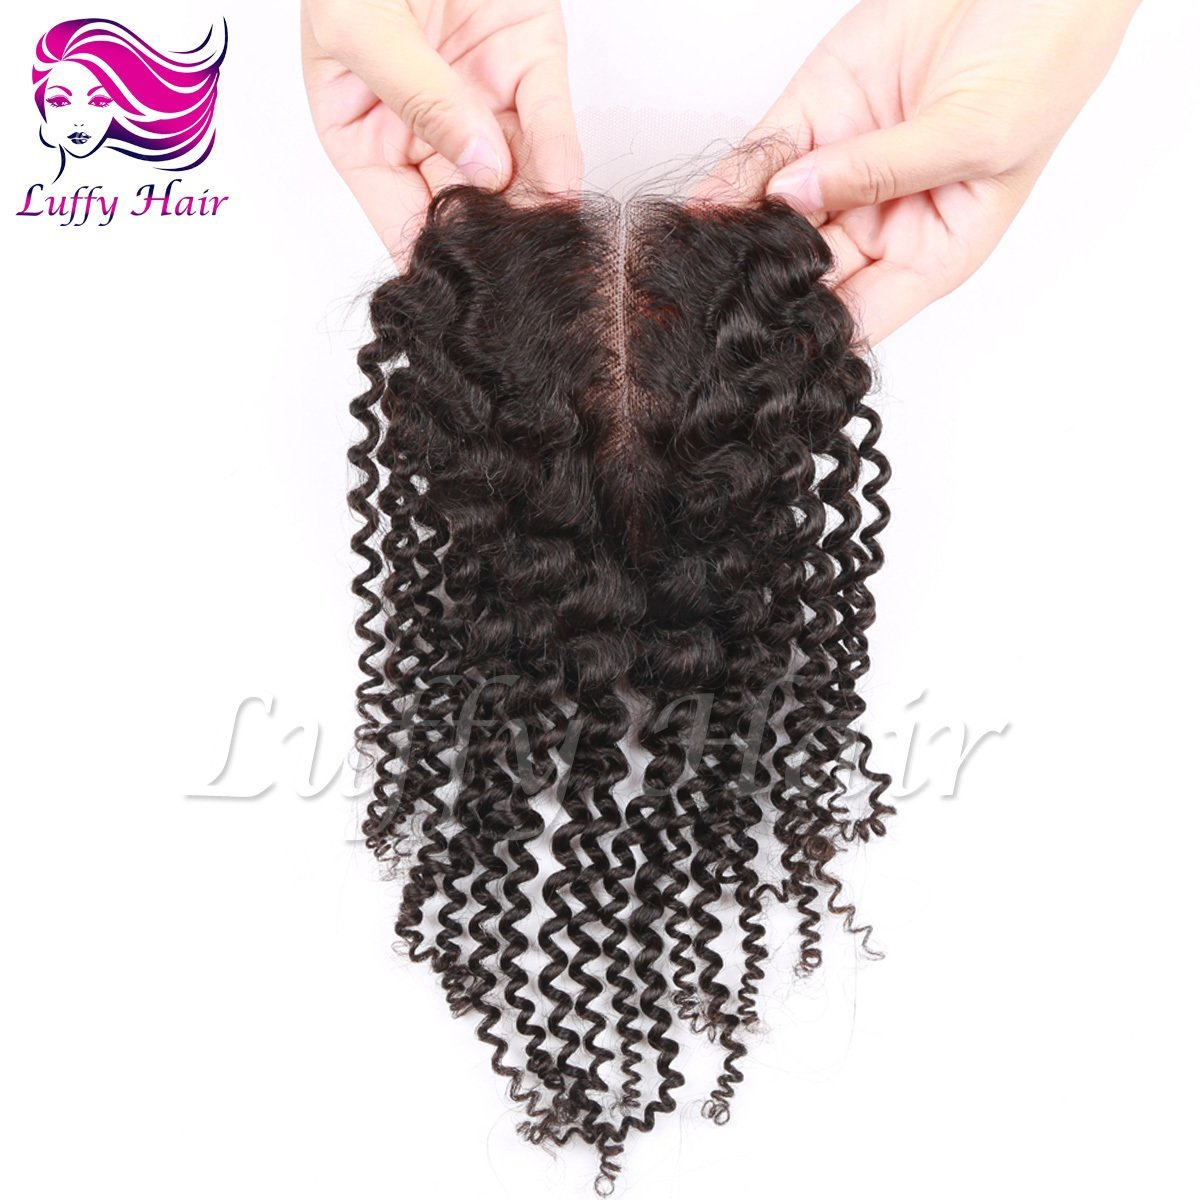 8A Virgin Human Hair 4x4 Kinky Curly Lace Closure- KCL005